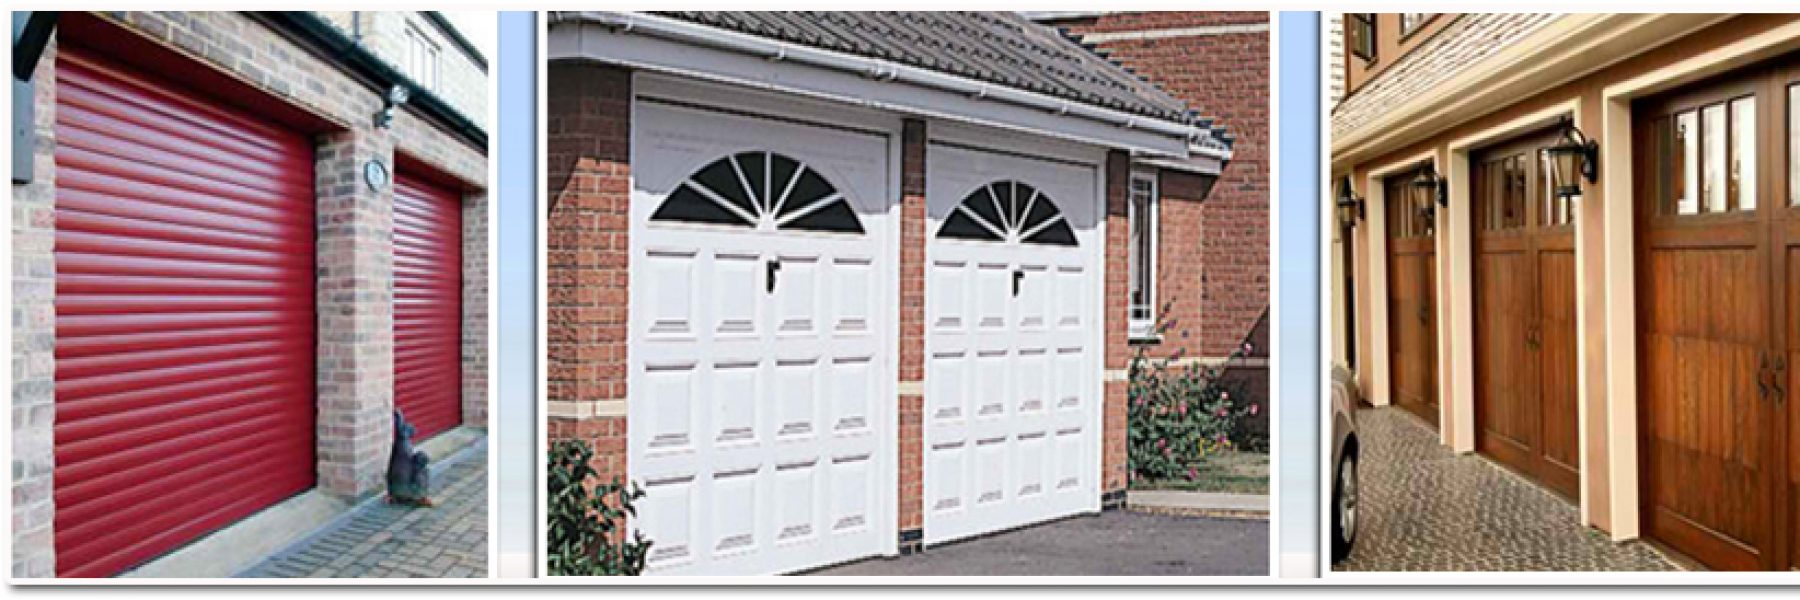 Garage Door Repair Service in Albuquerque